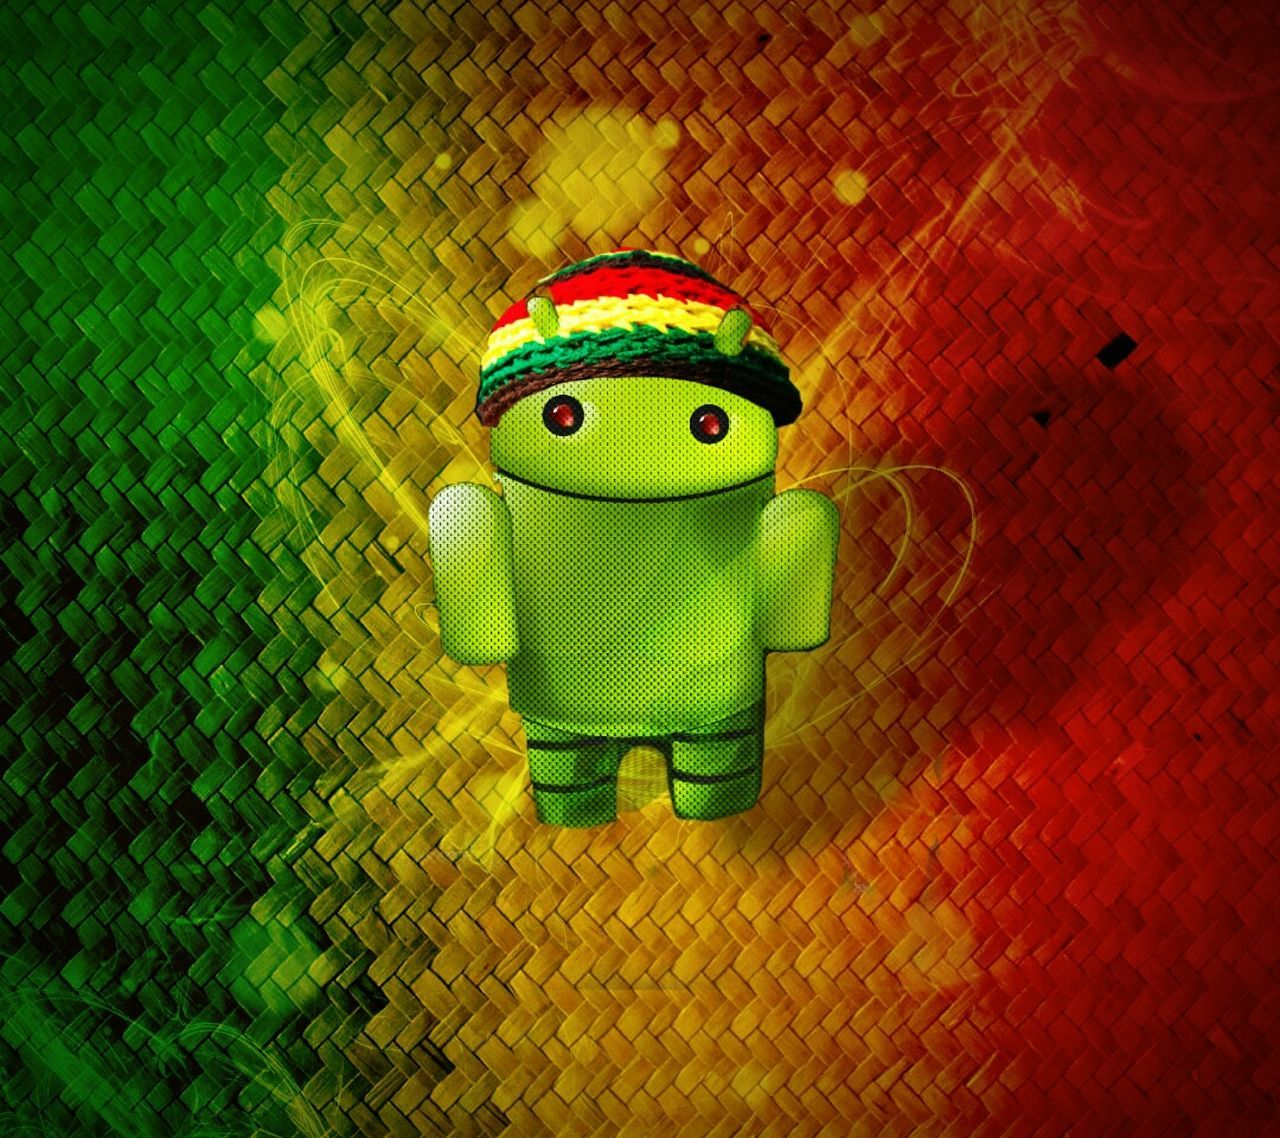 Android Bobmarley RASTA Redeyes Wallpaper Graphic Design